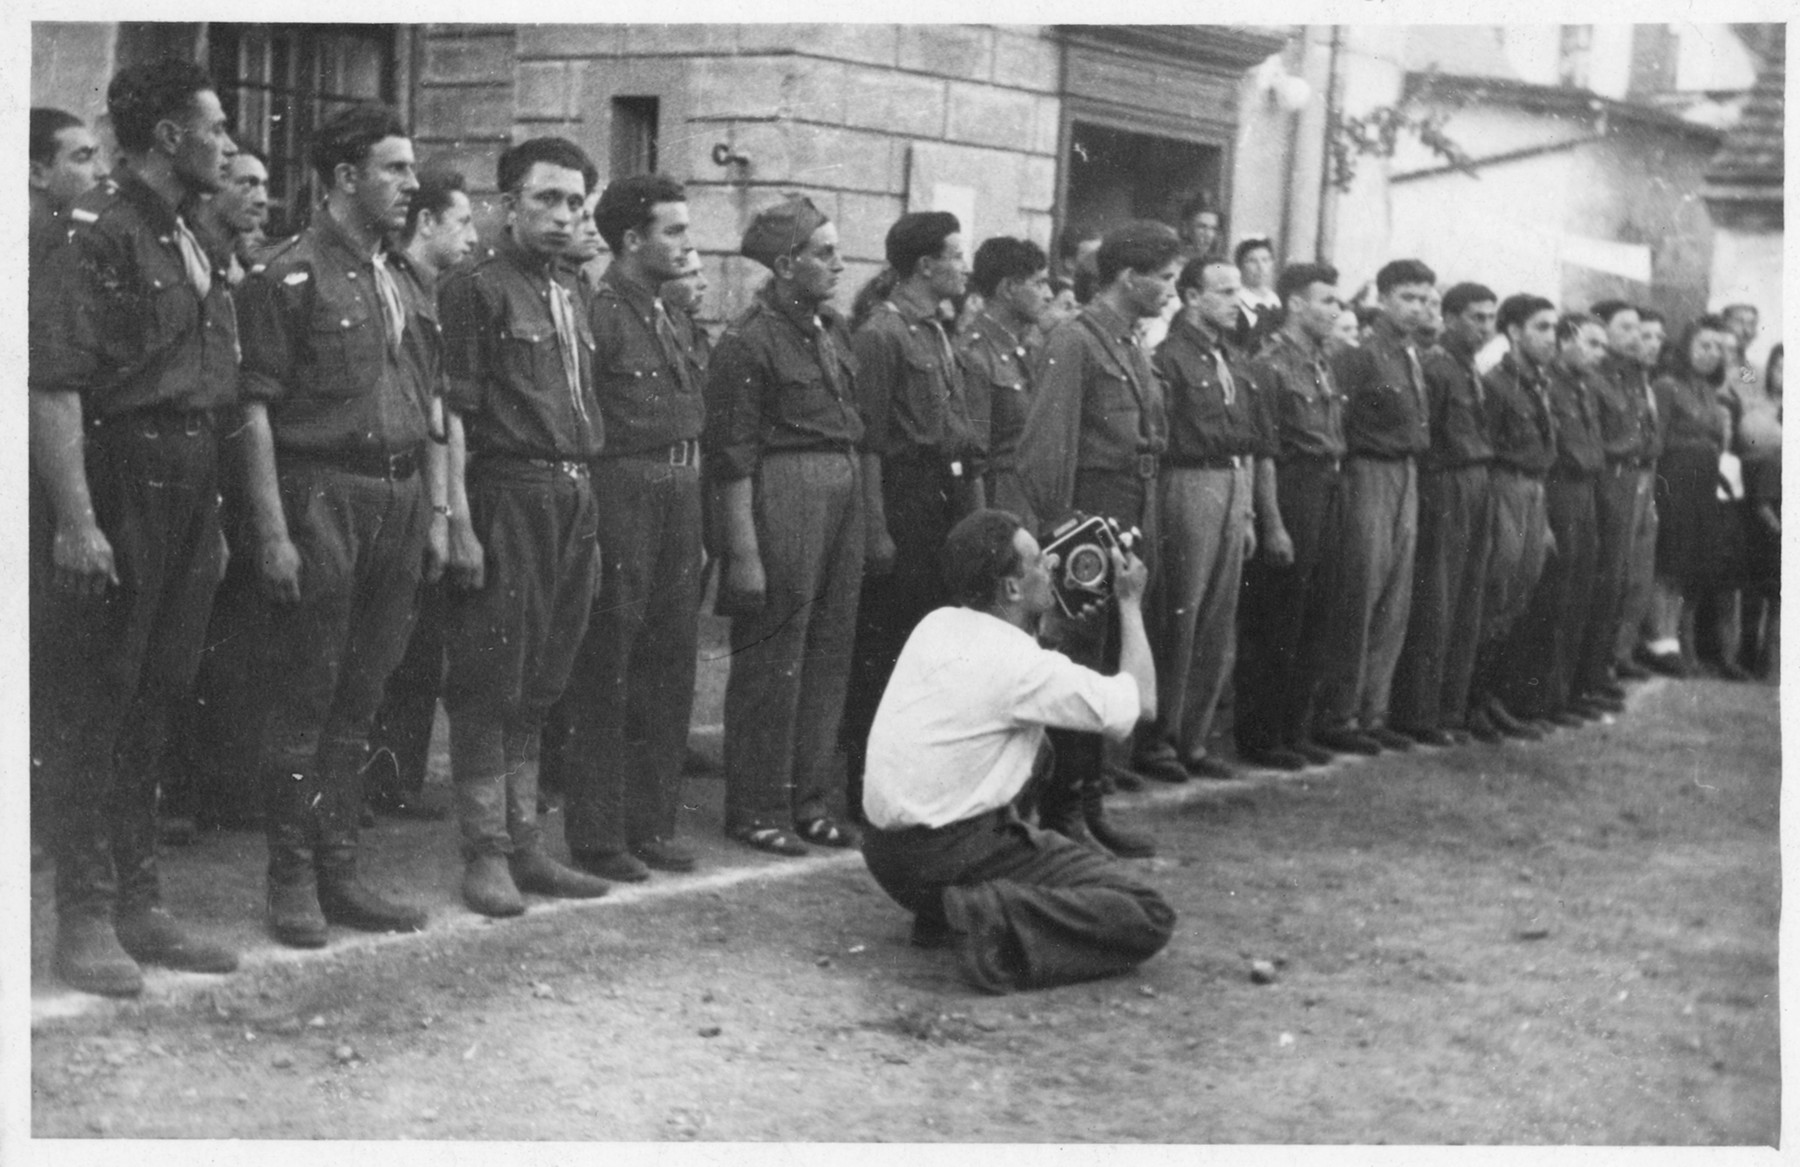 Shmuel Willenberg shoots footage of members of the Zionist group Ichud in postwar Poland.